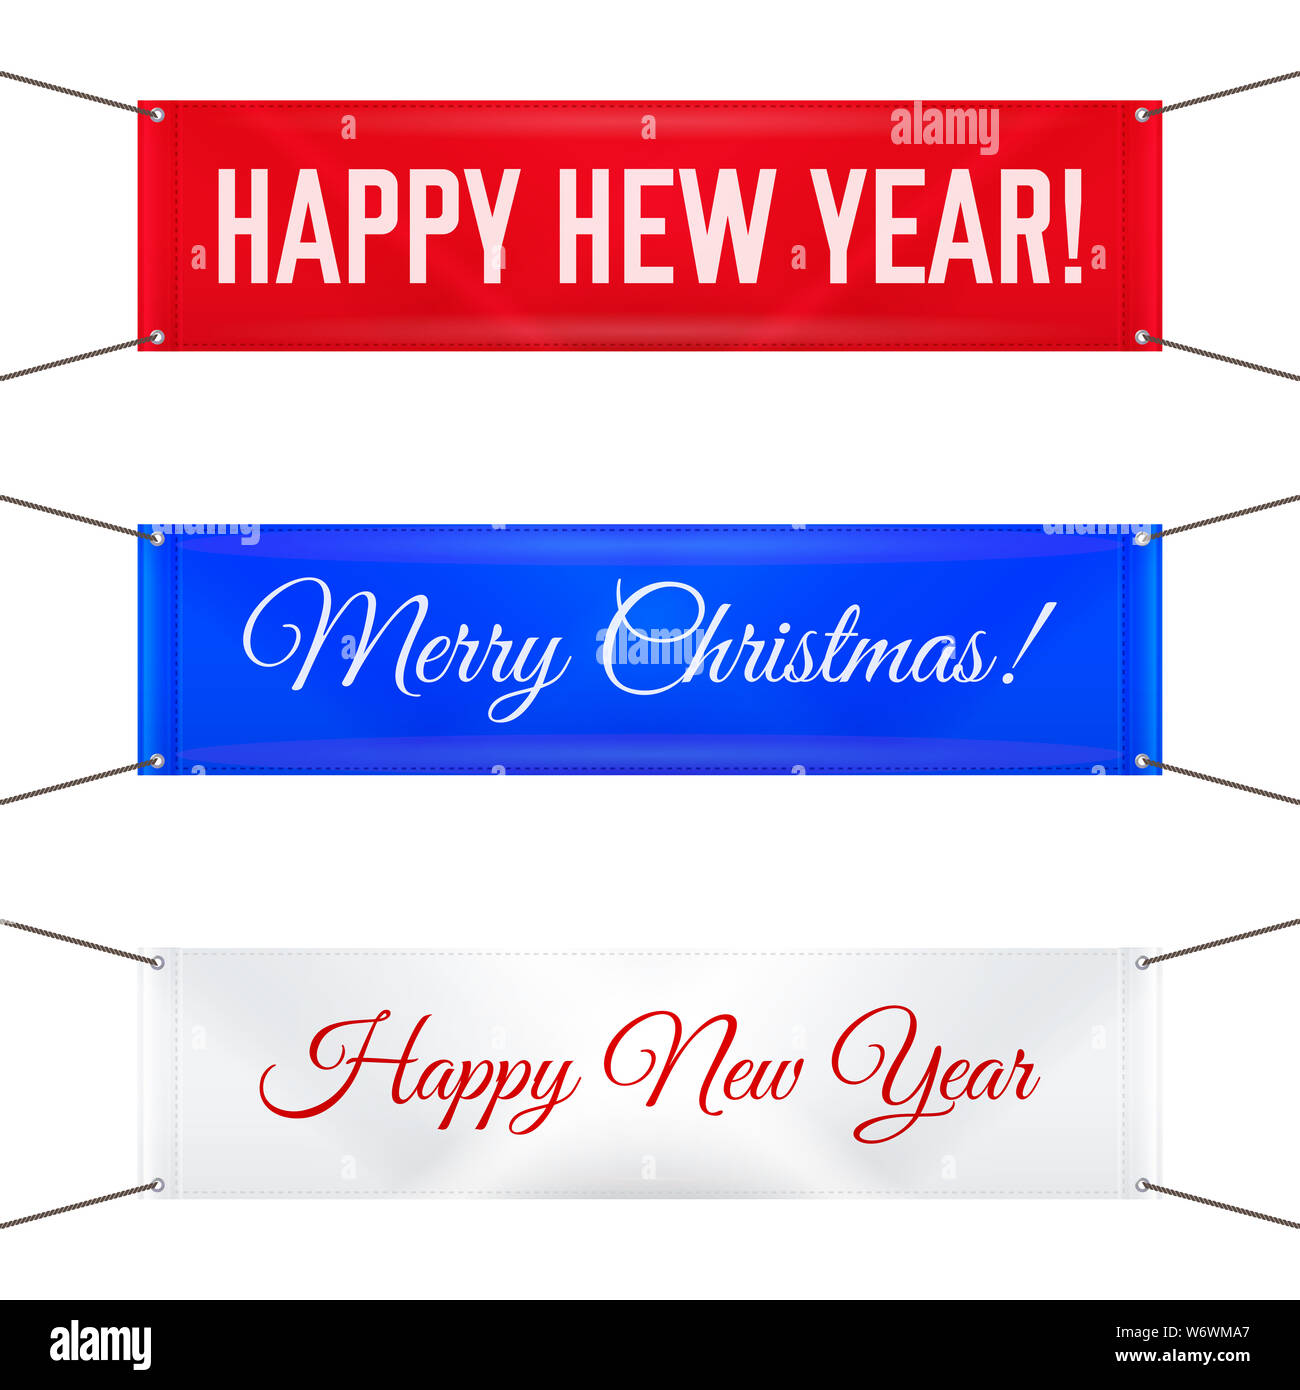 Hanging Banner Images Merry Christmas & Happy New Year 2020 Hanging Textile Banners with Grommets. Merry Christmas and Happy